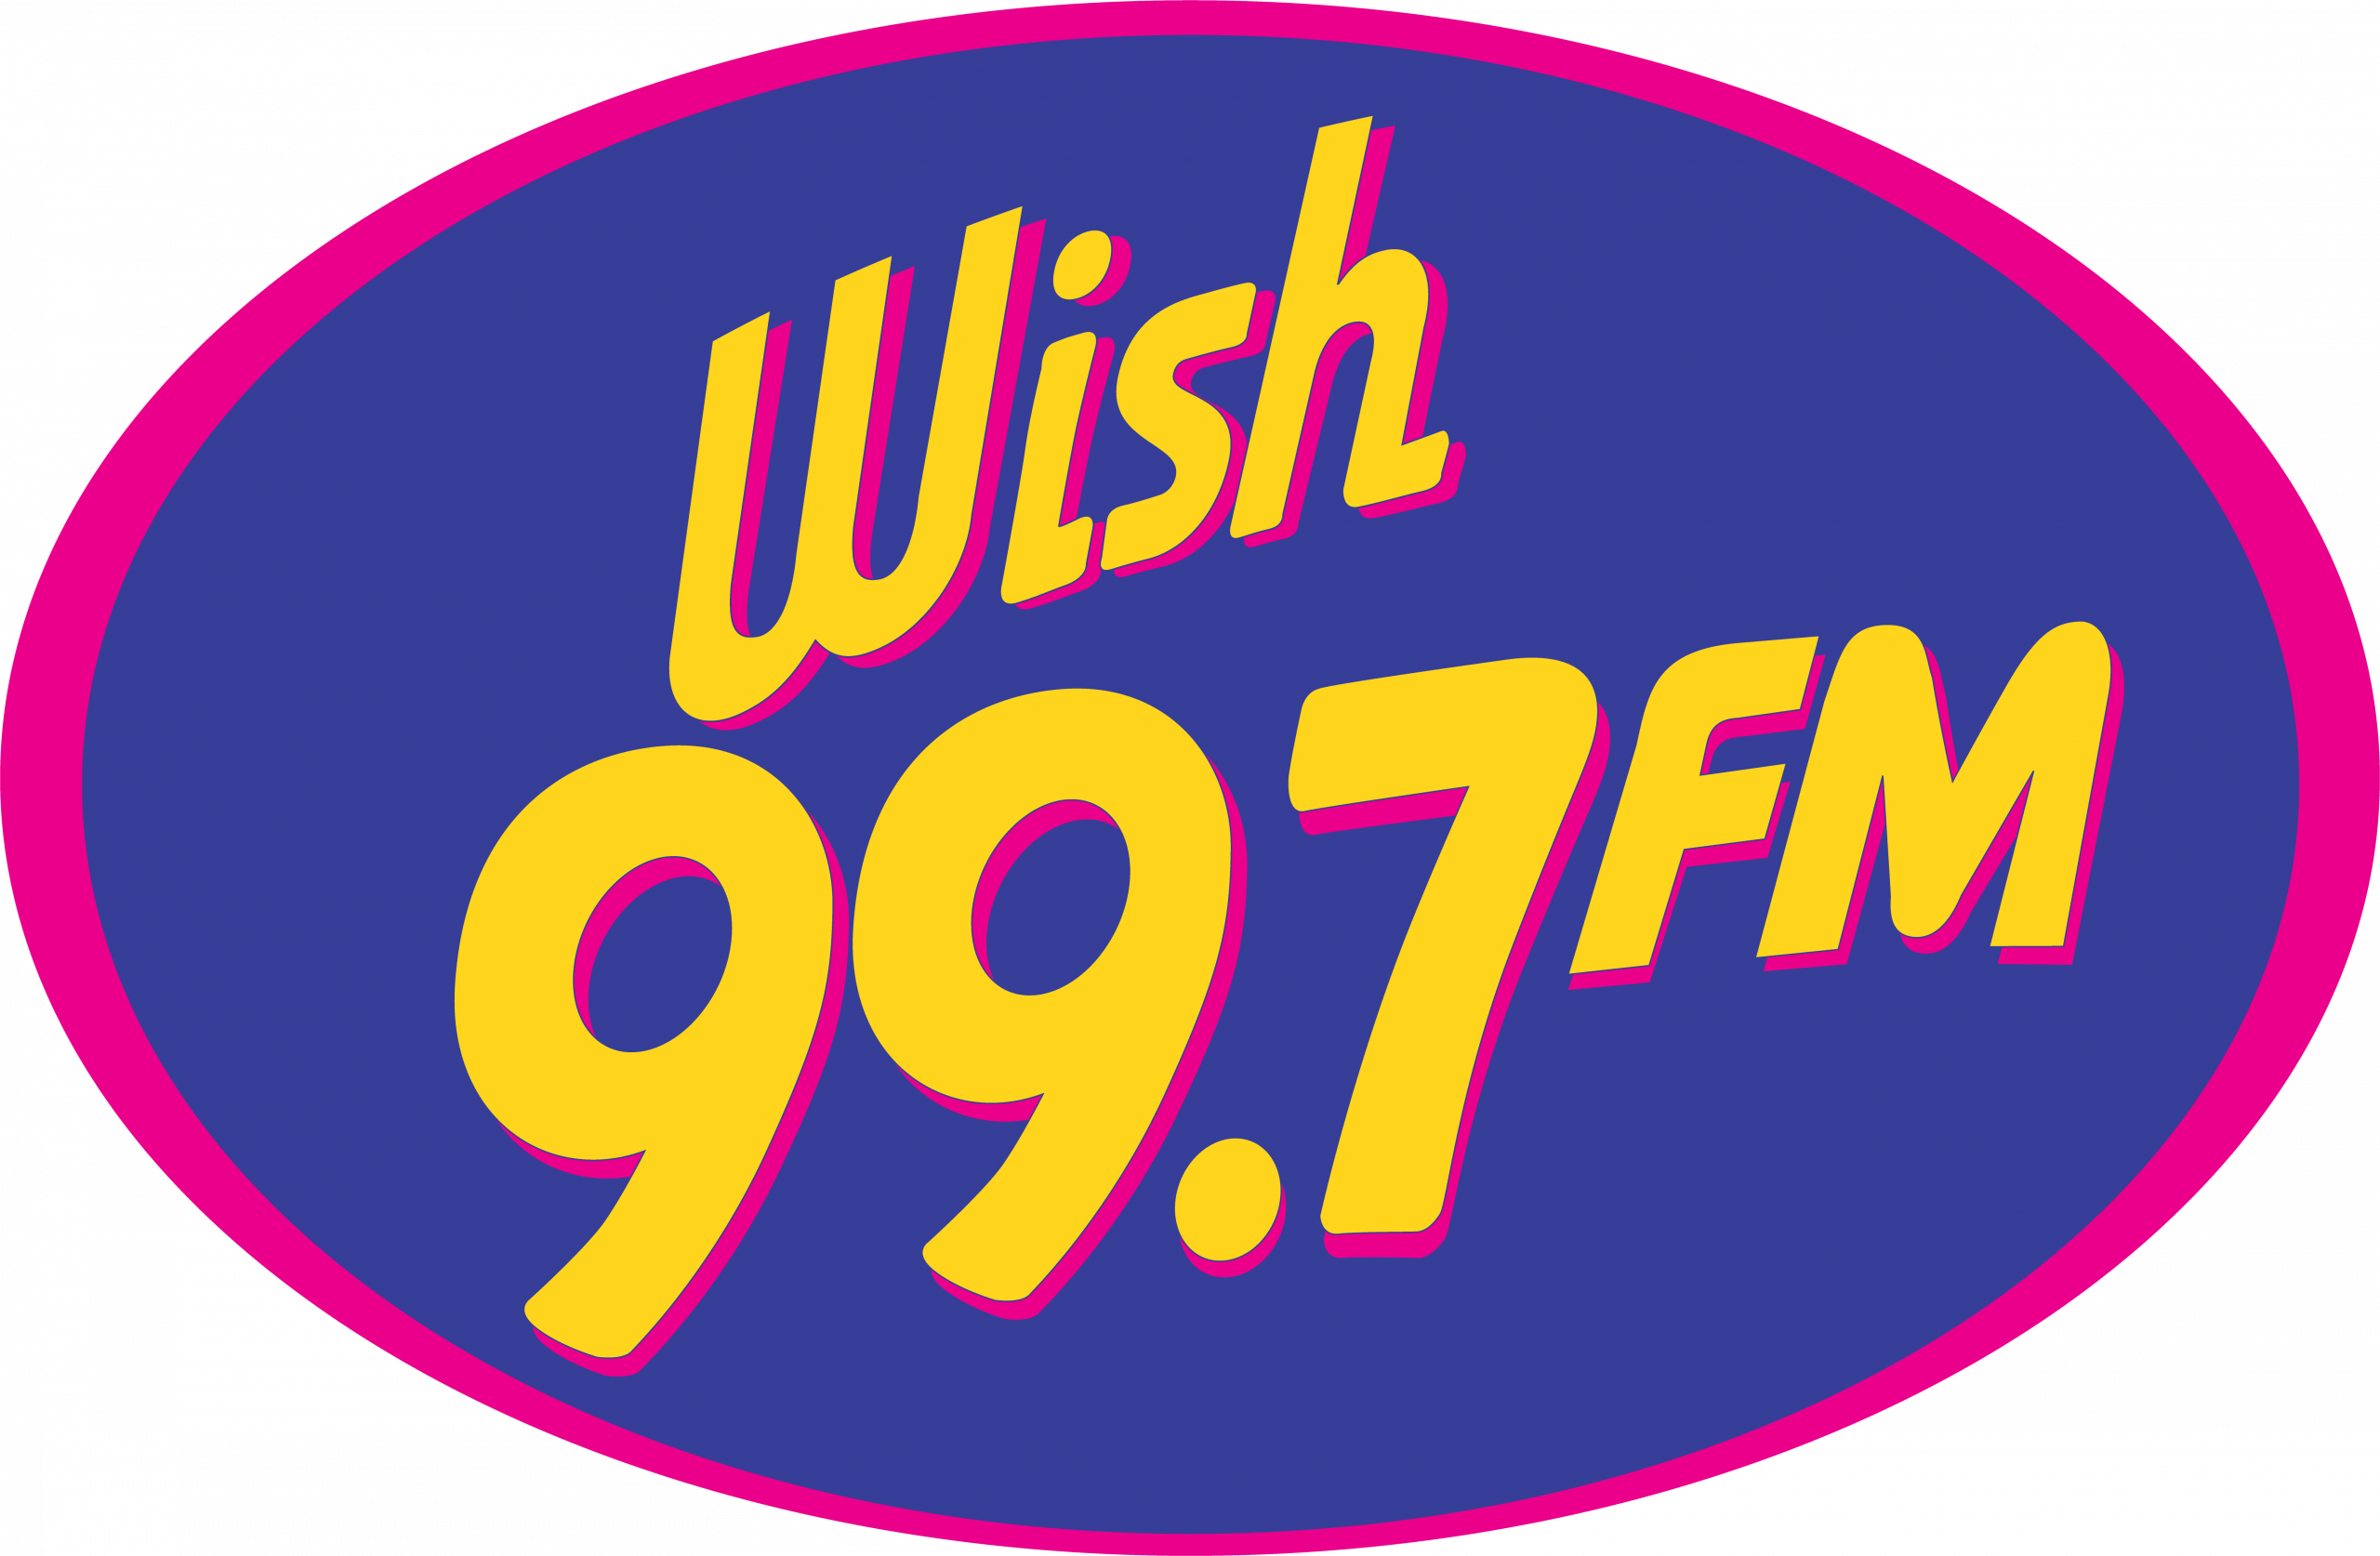 Wish logo site12